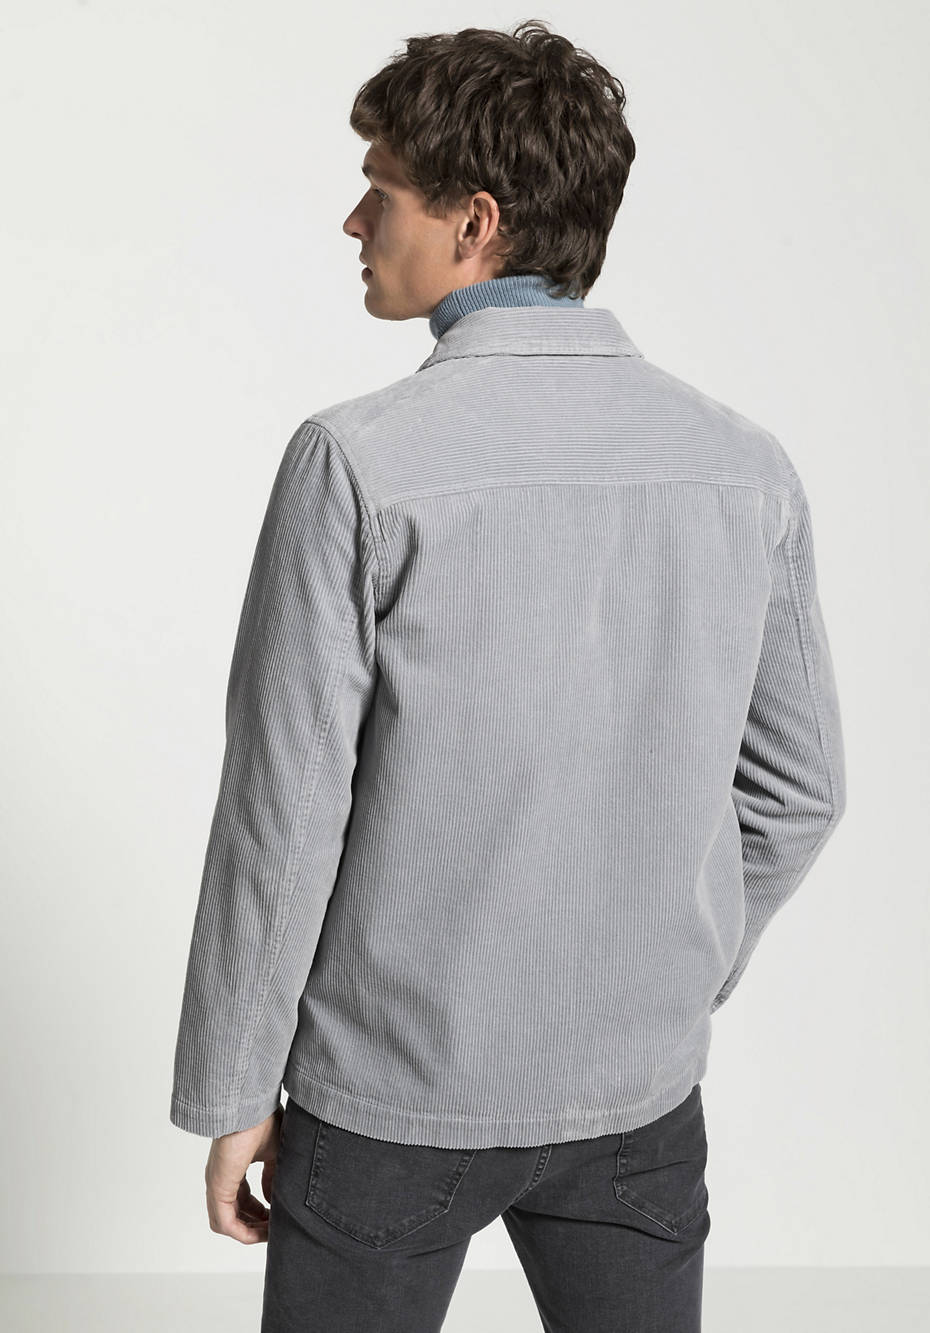 Cord jacket made from pure organic cotton